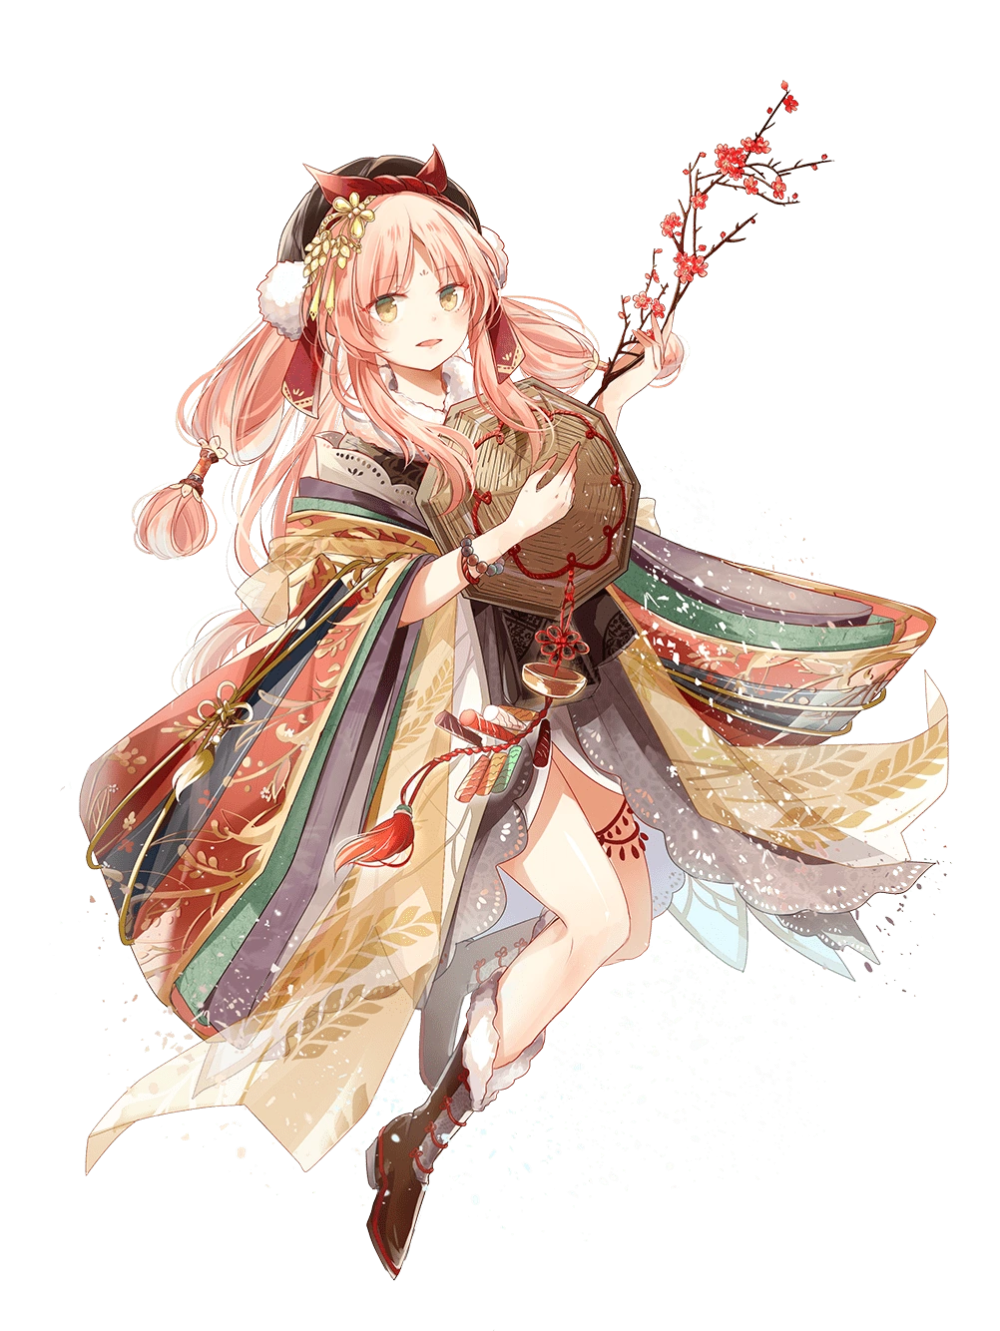 A Young Lady That Used To Be Very Popular Among The People At One Point In Time She Was The Symbol Of Harvest Food Fantasy Cool Anime Pictures Character Art